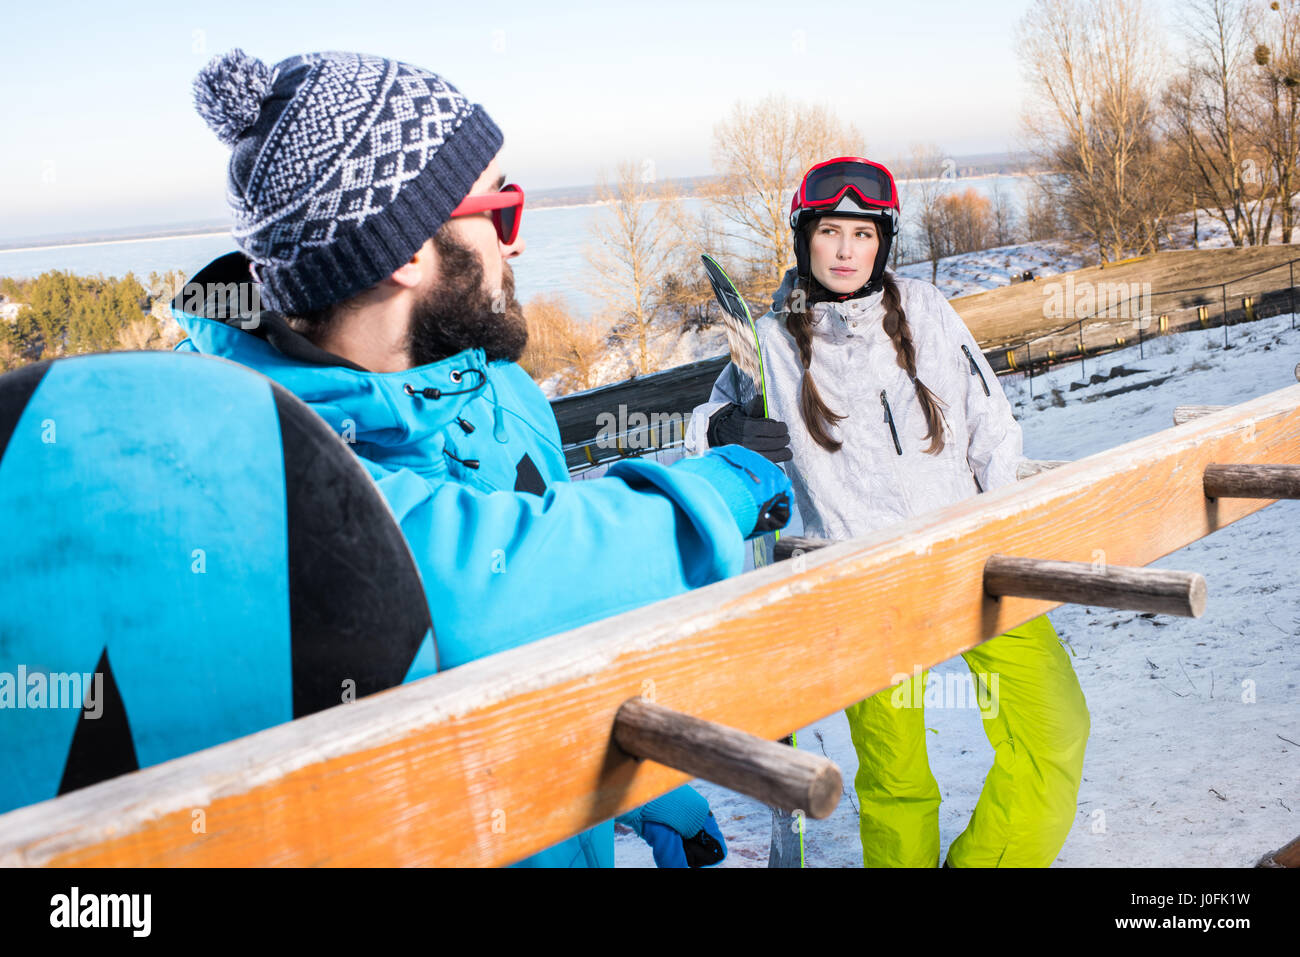 Young male and female snowboarders at ski resort  looking at each other - Stock Image